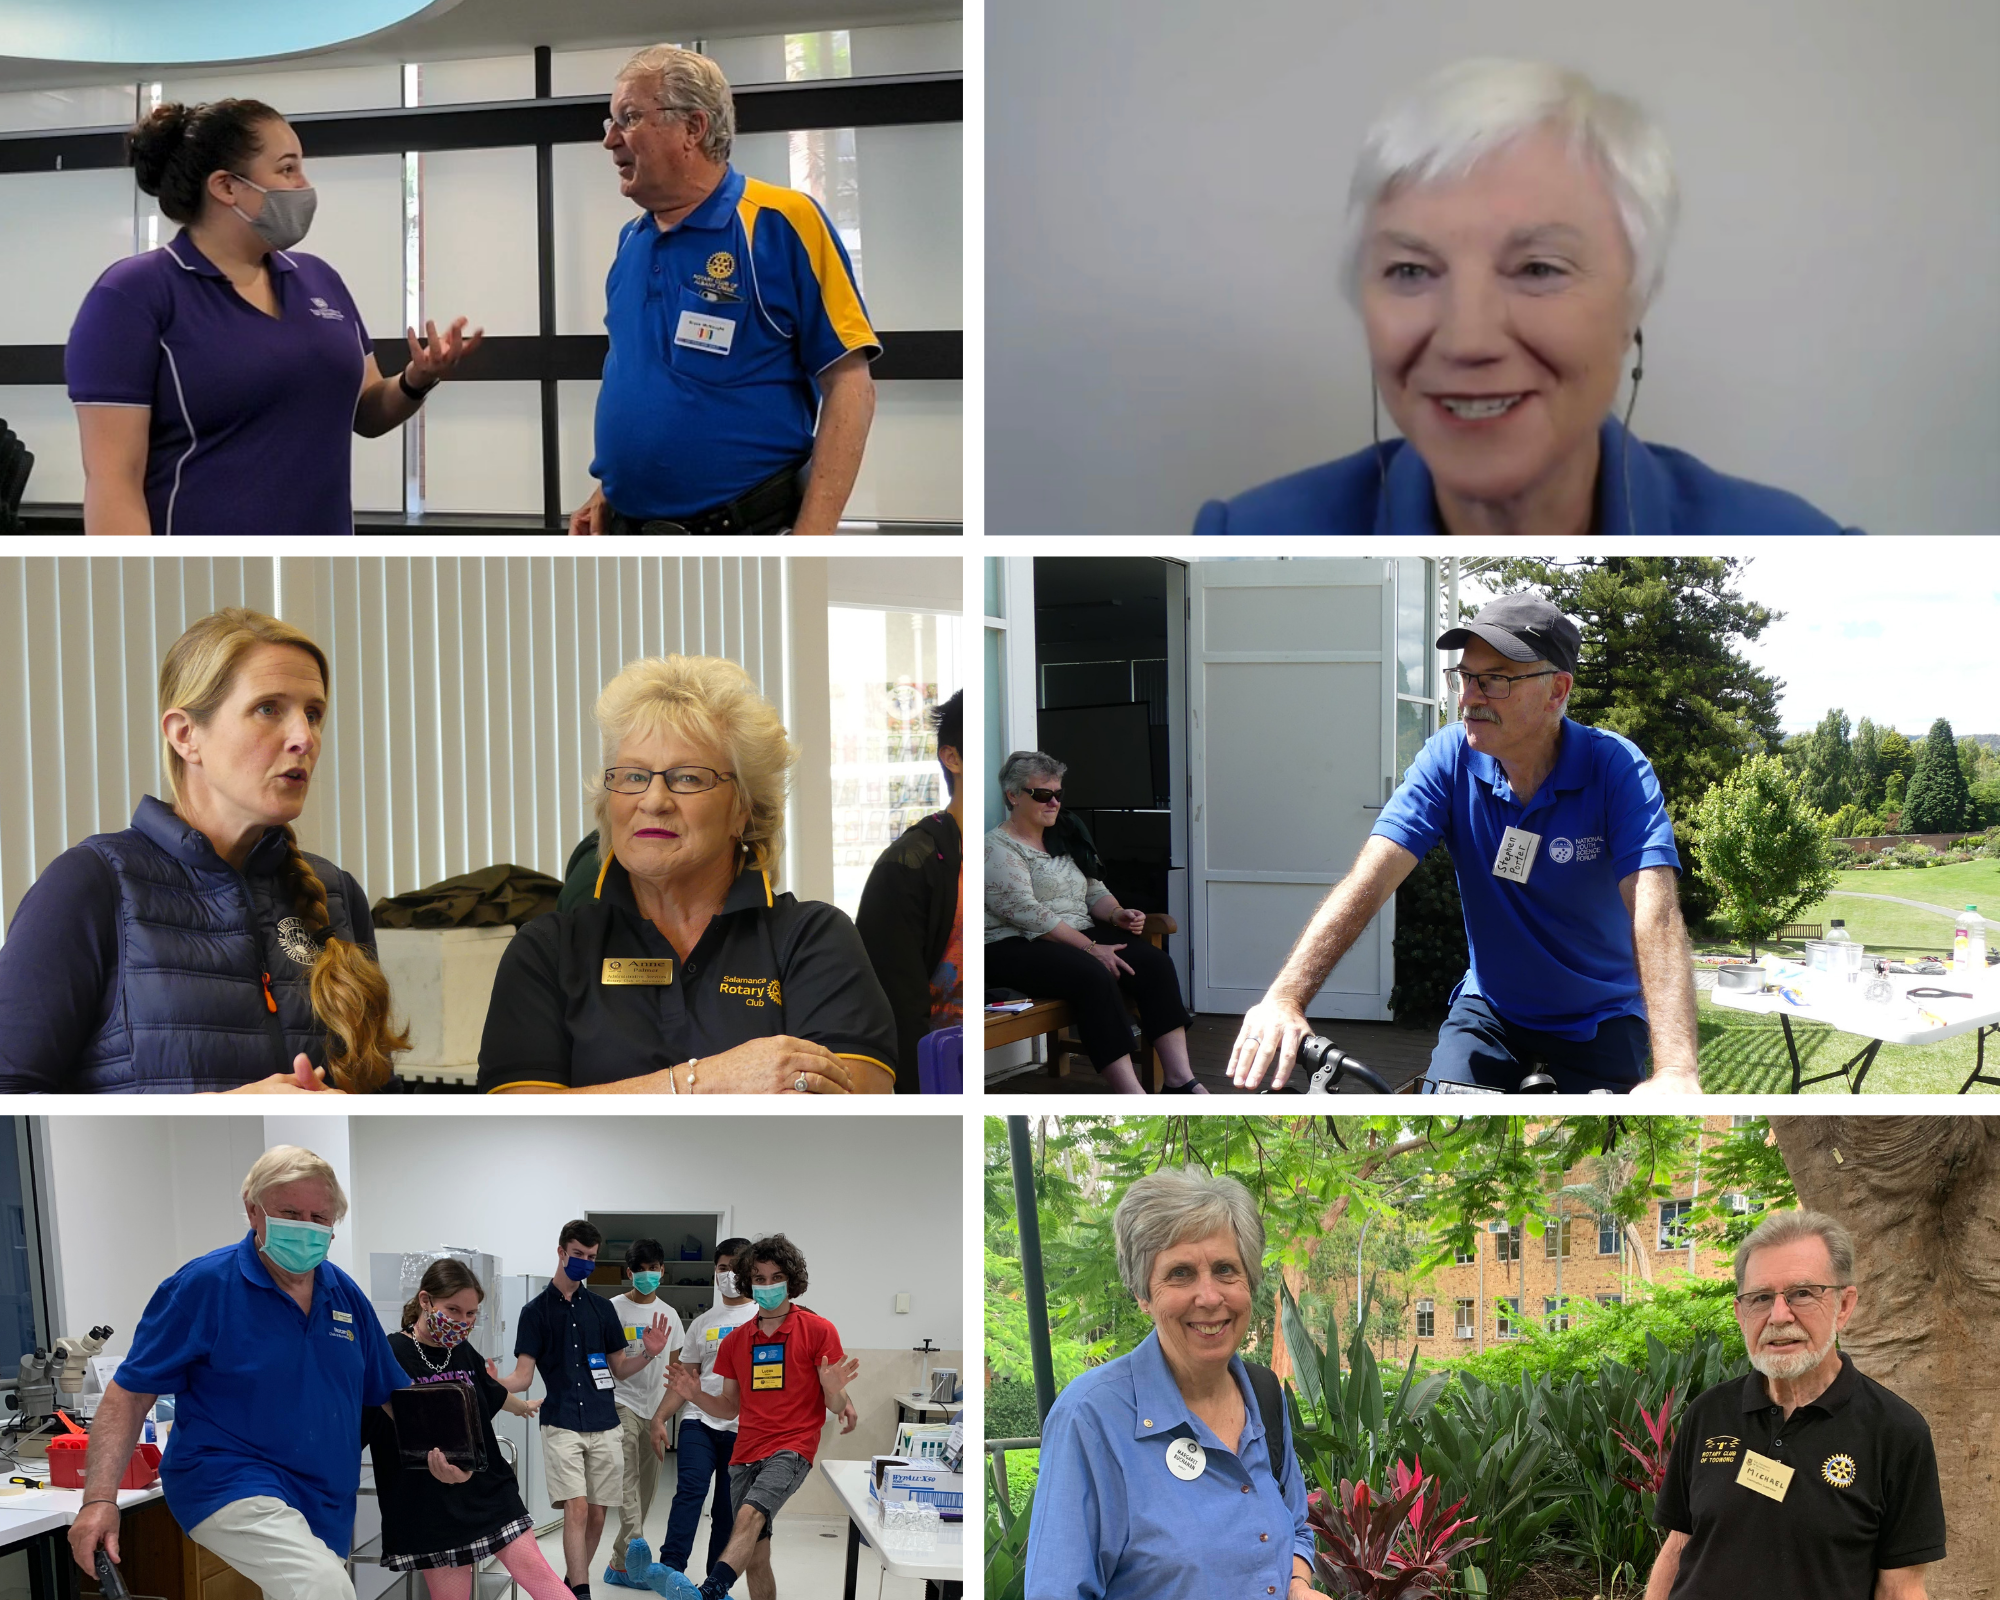 Working collaboratively with Rotary to make a difference - content image